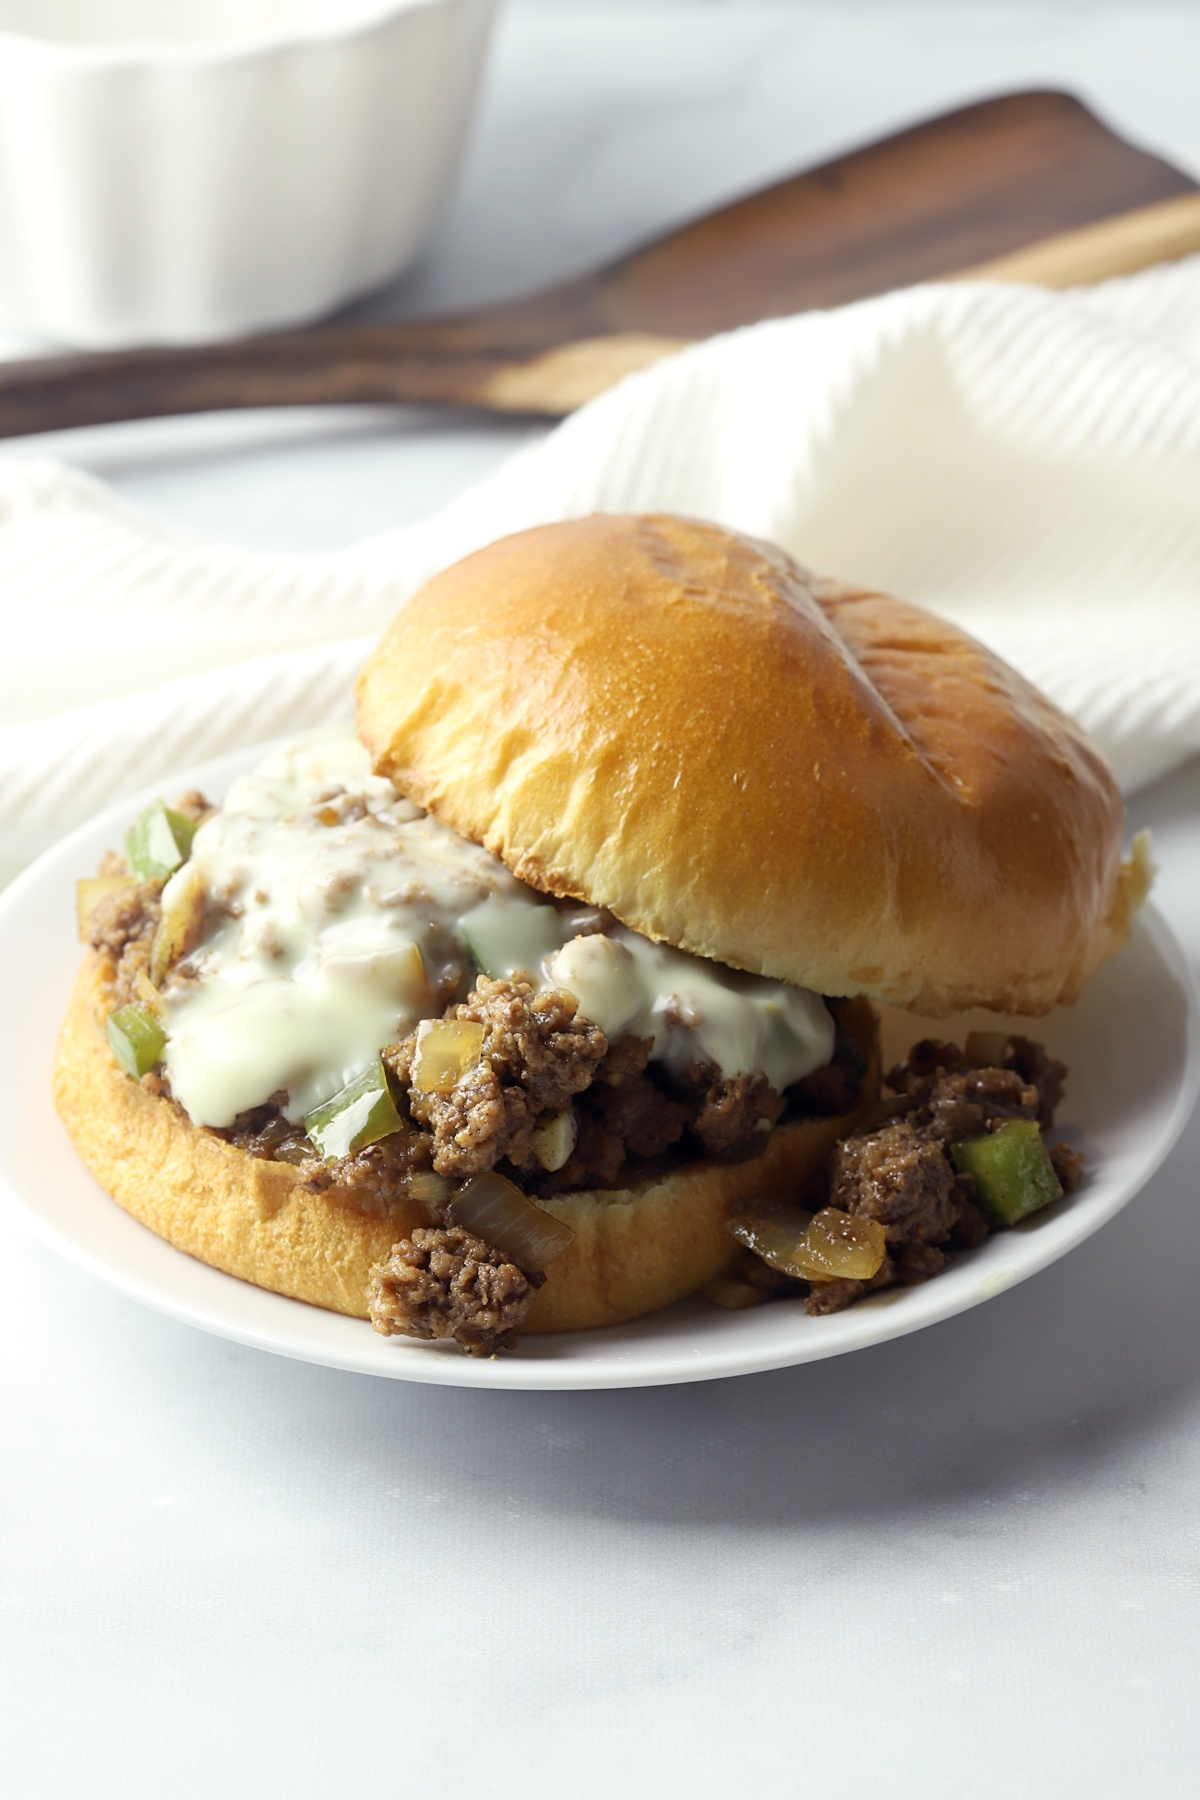 A sloppy joe on a white plate.